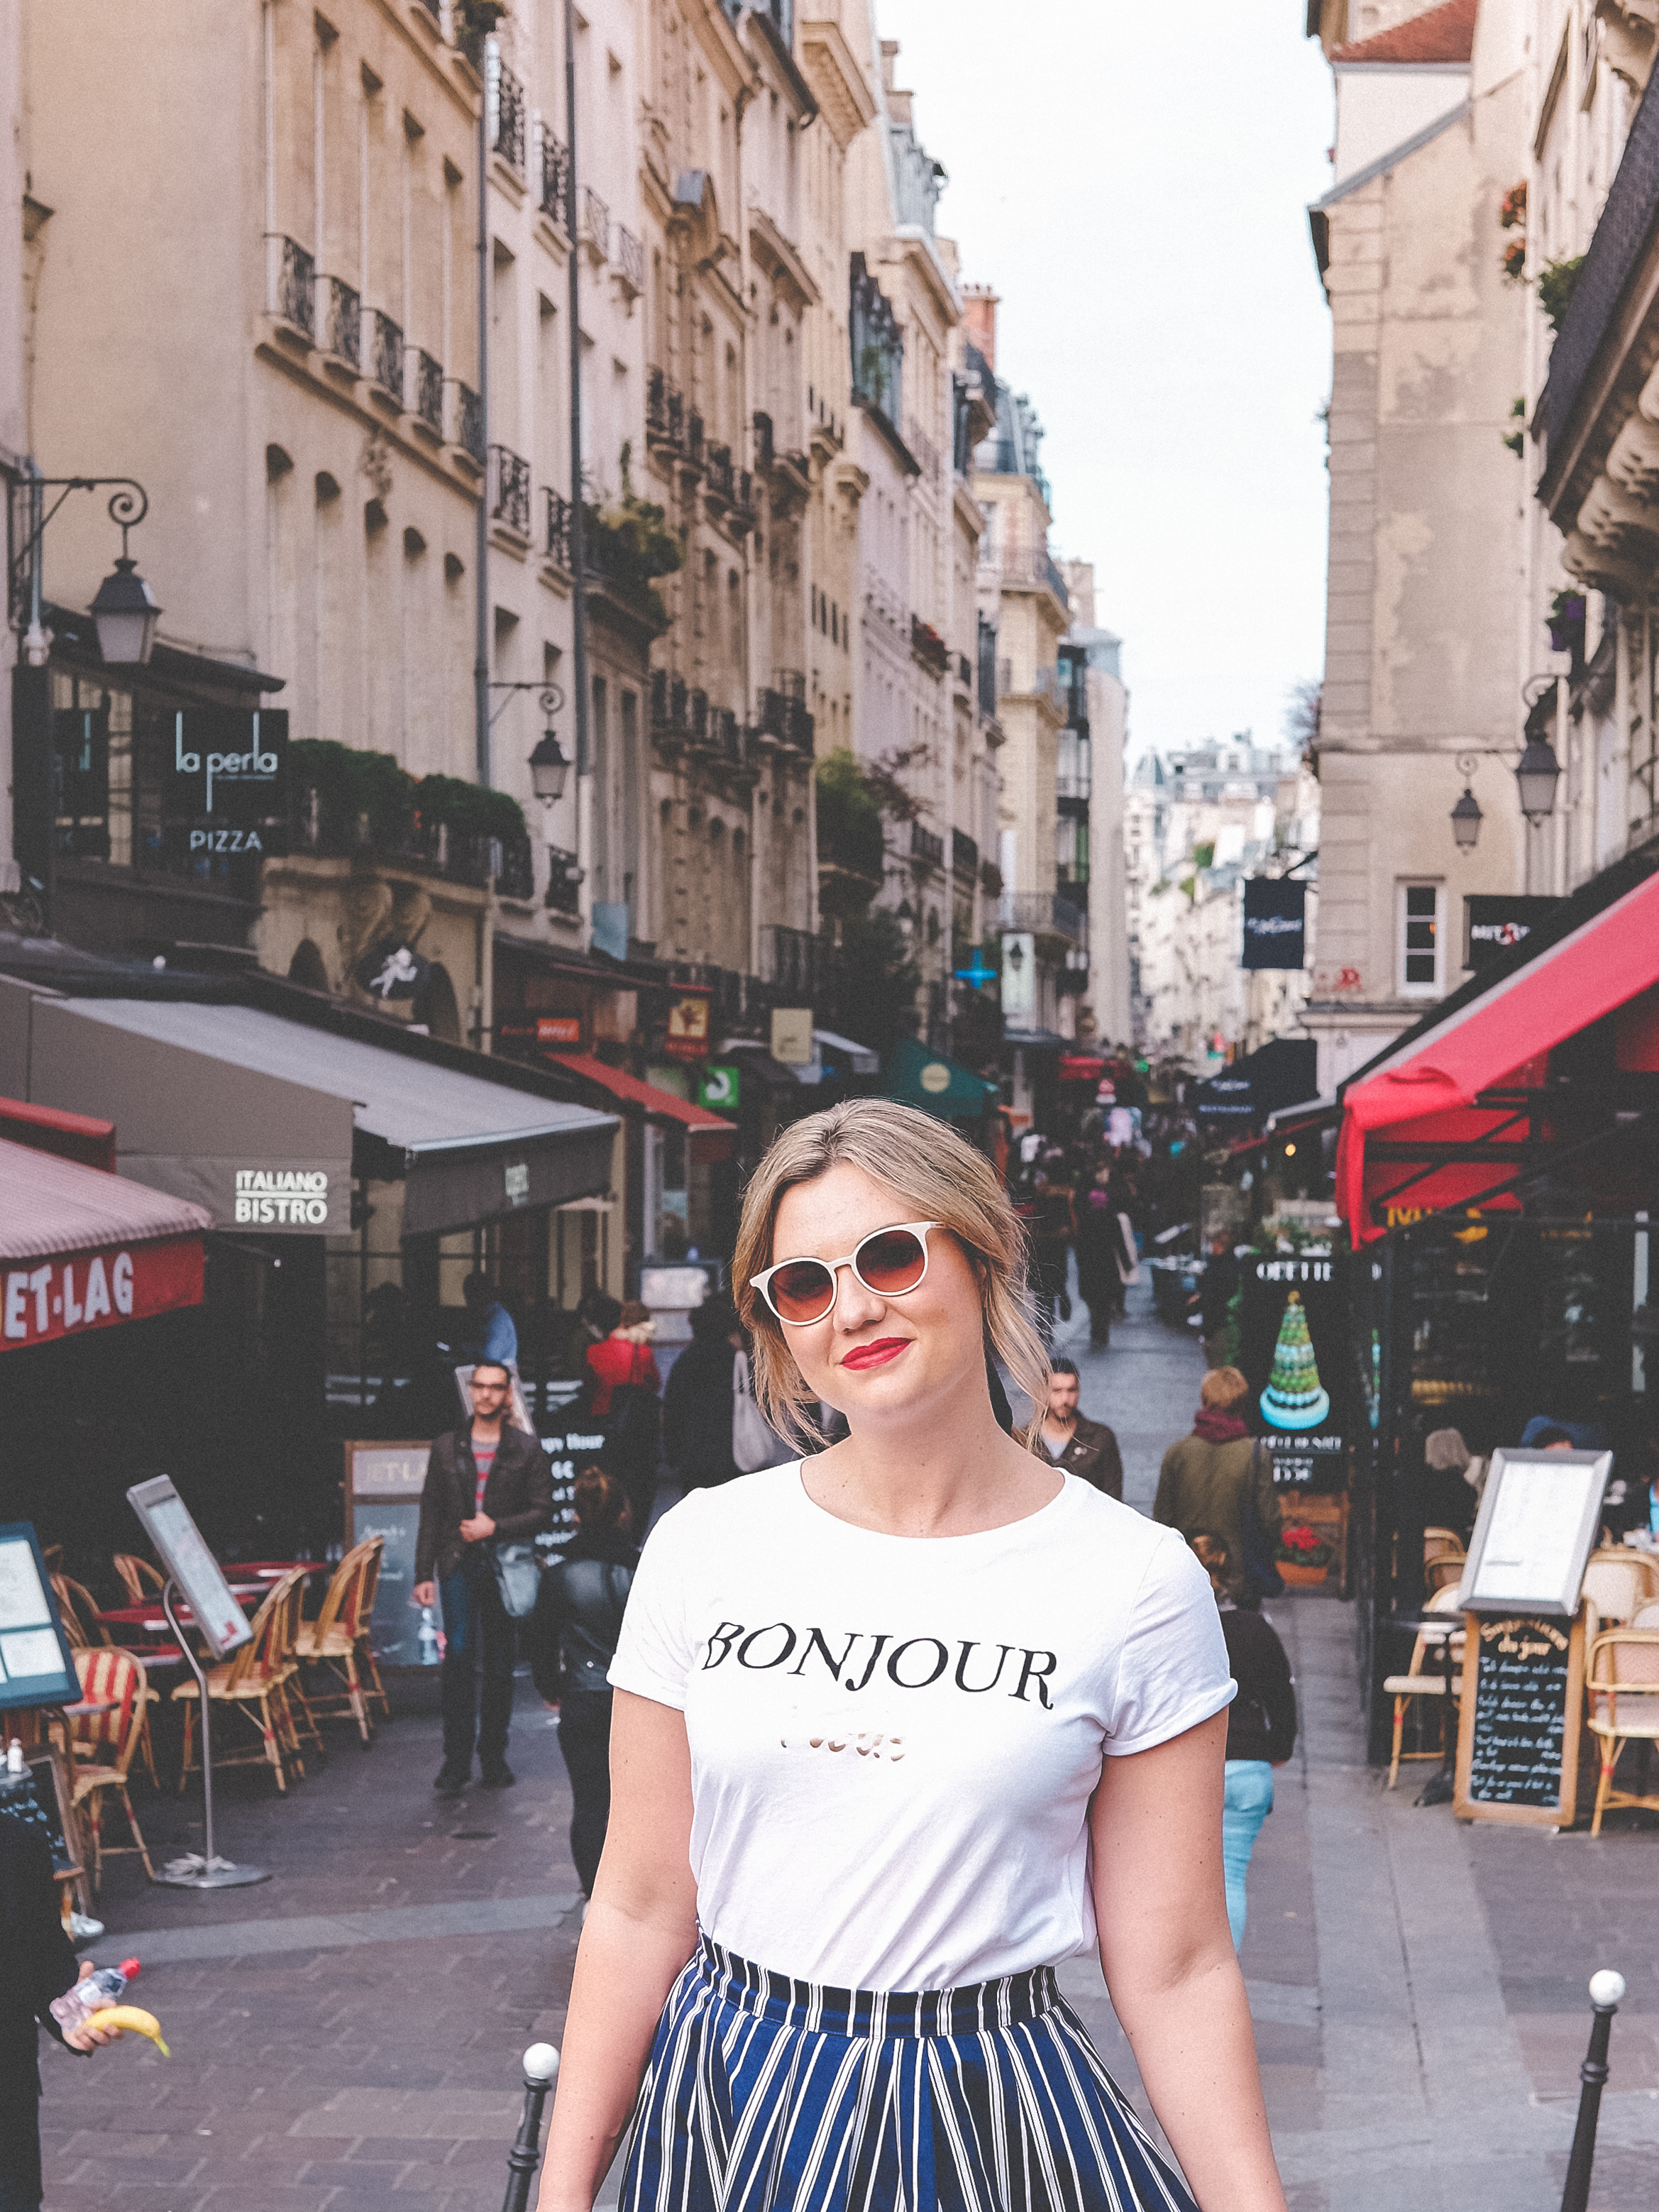 20 Pictures of Paris Through My Eyes (PLUS 30% Off Designer Sunglasses from Soda & Sand)